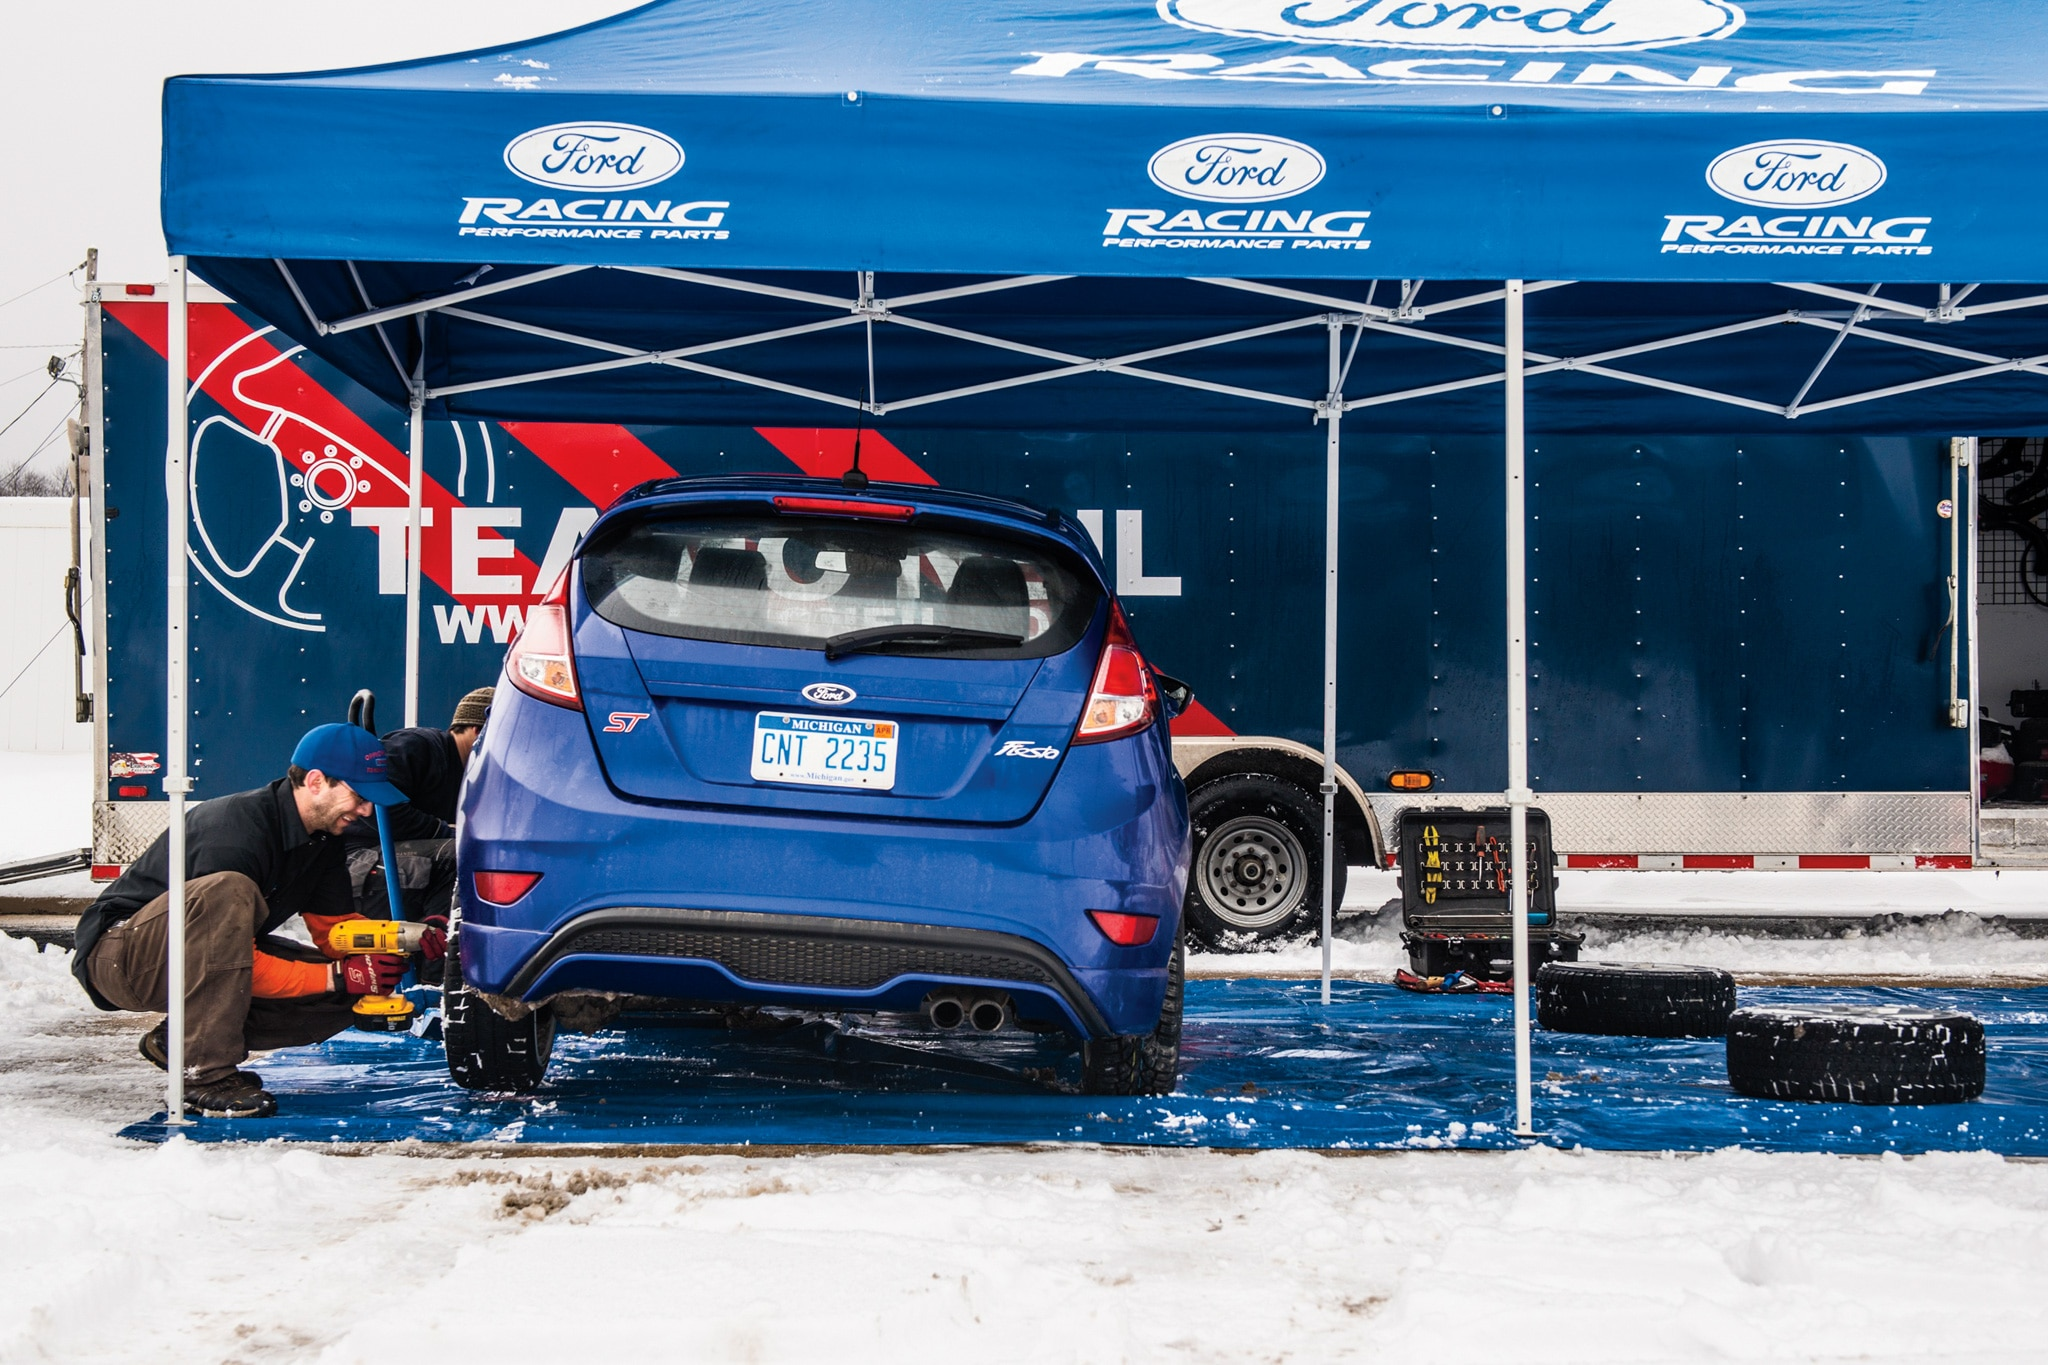 Our stock Fiesta ST needed only upgraded wheels and tires to conquer a winter rally stage alongside its rally-prepped twin, below.